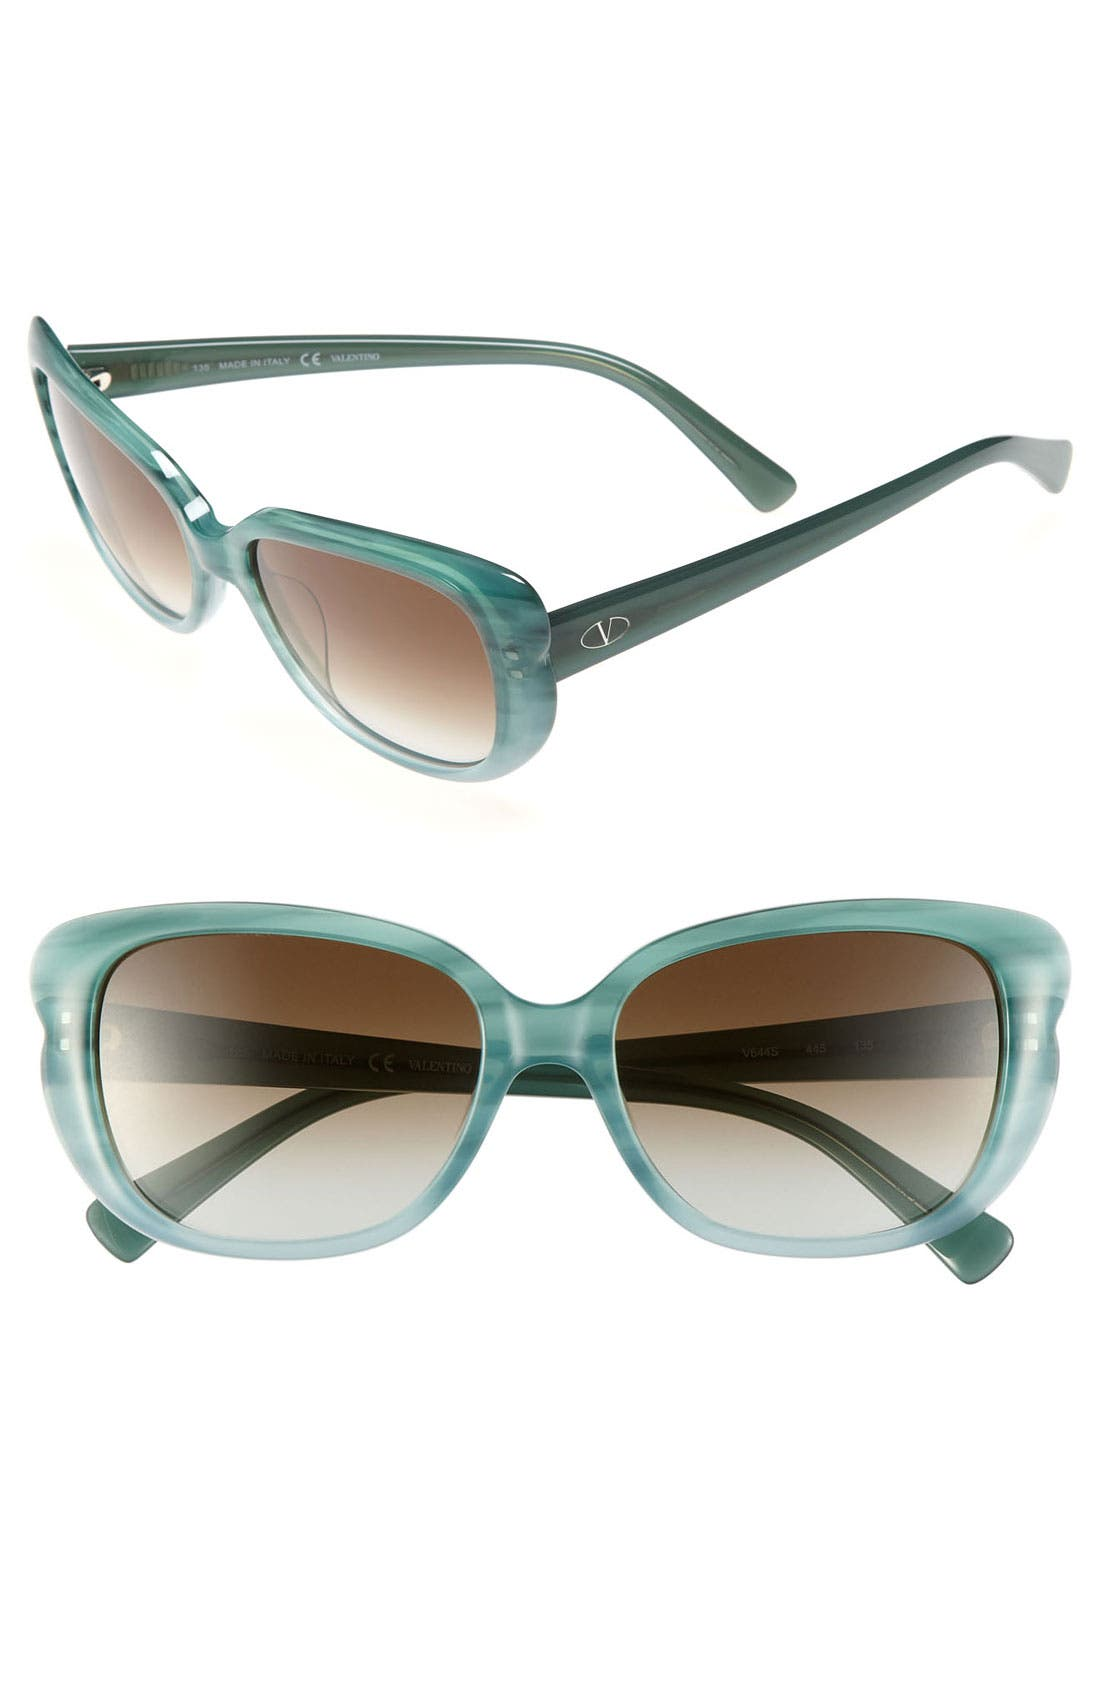 Main Image - Valentino 54mm Sunglasses